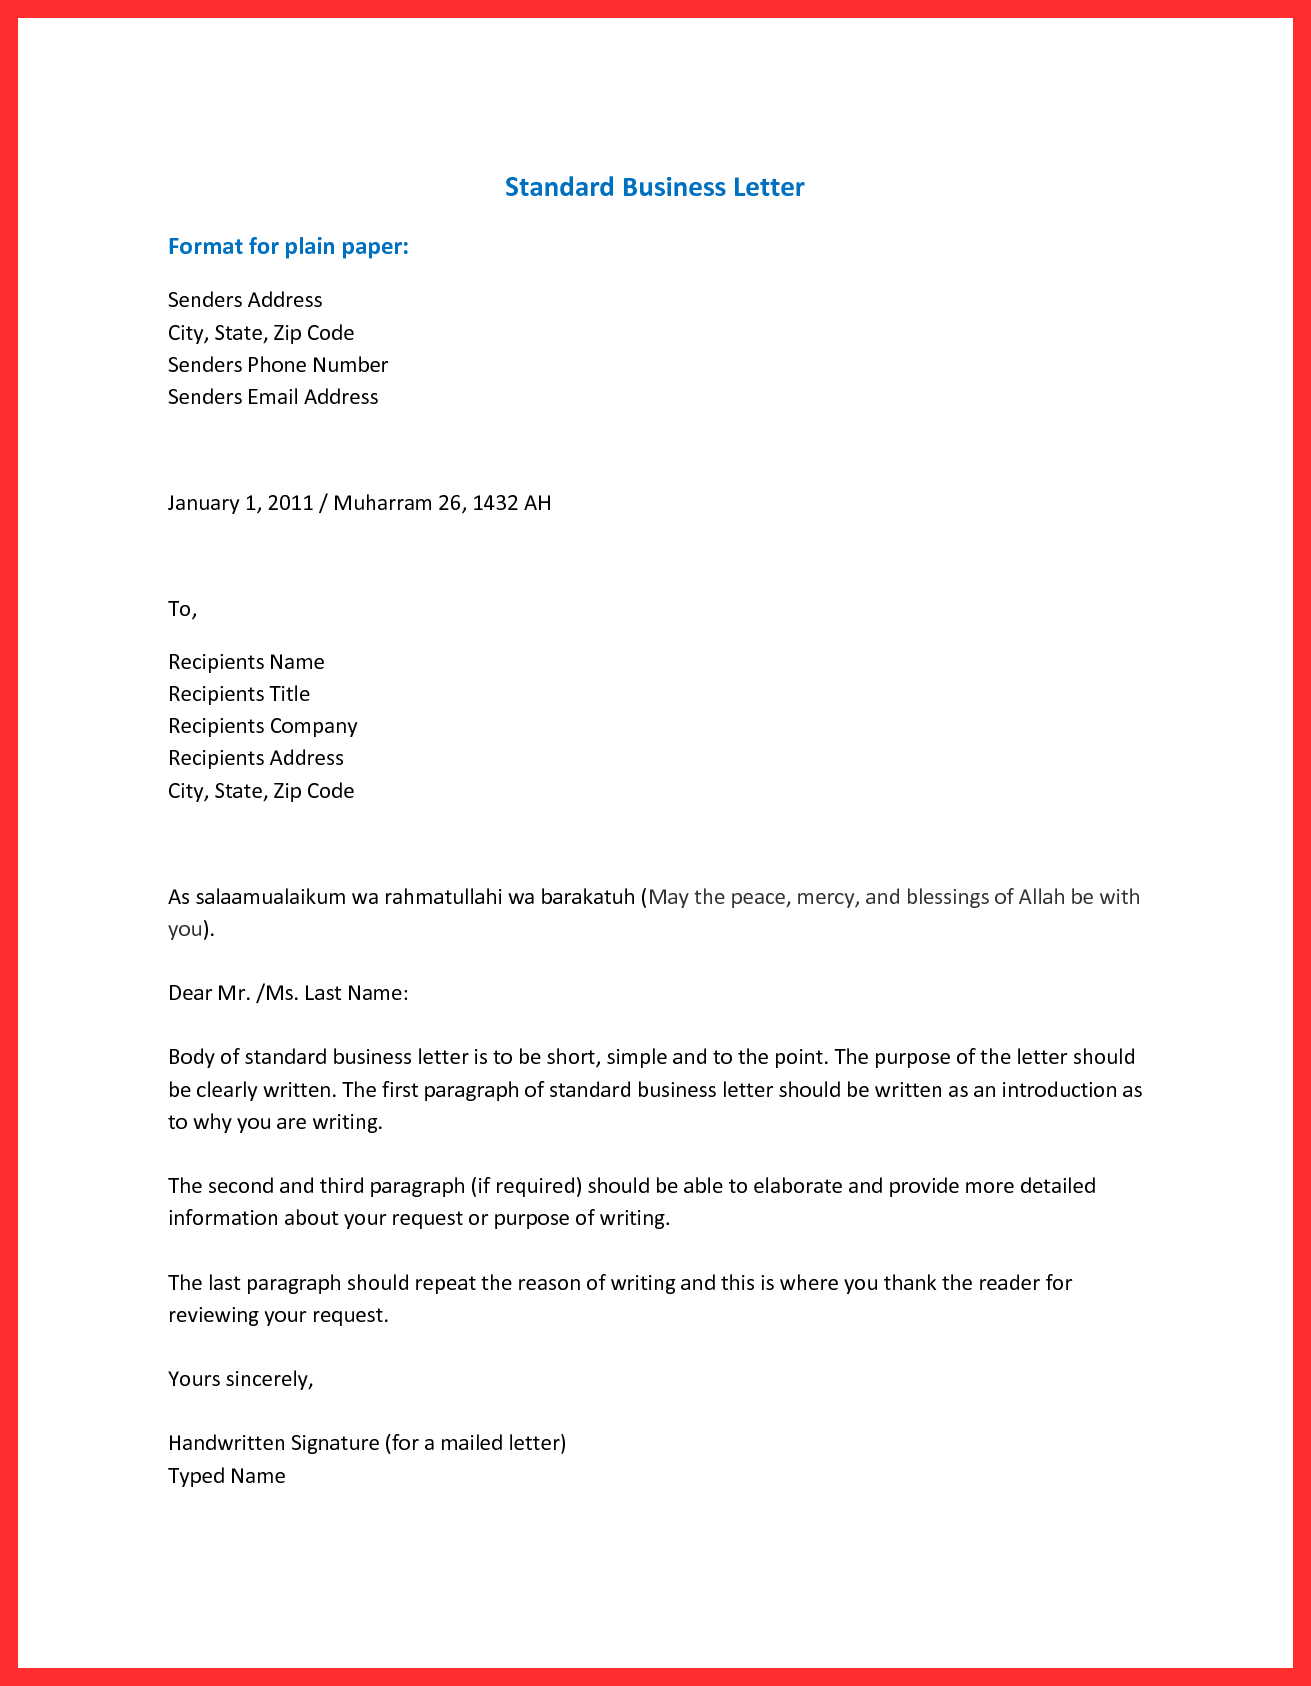 Business letter format setup kudyth 001 efficient more – nwuvaalio